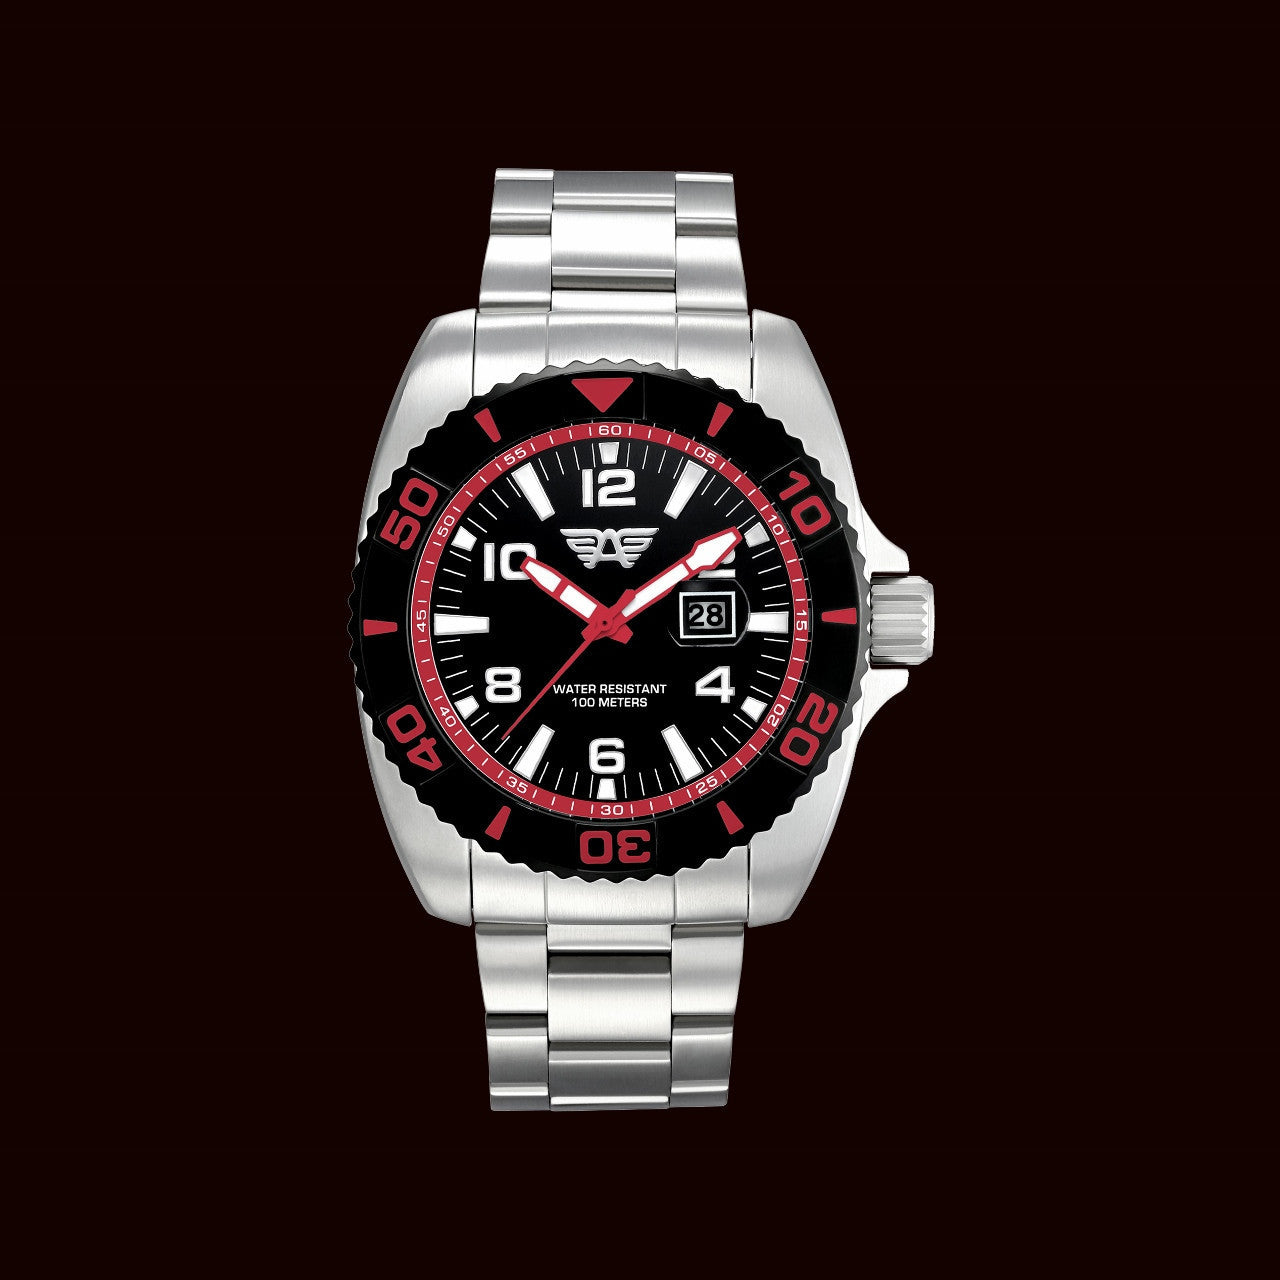 Aquarius Watches ADZ-2010-03